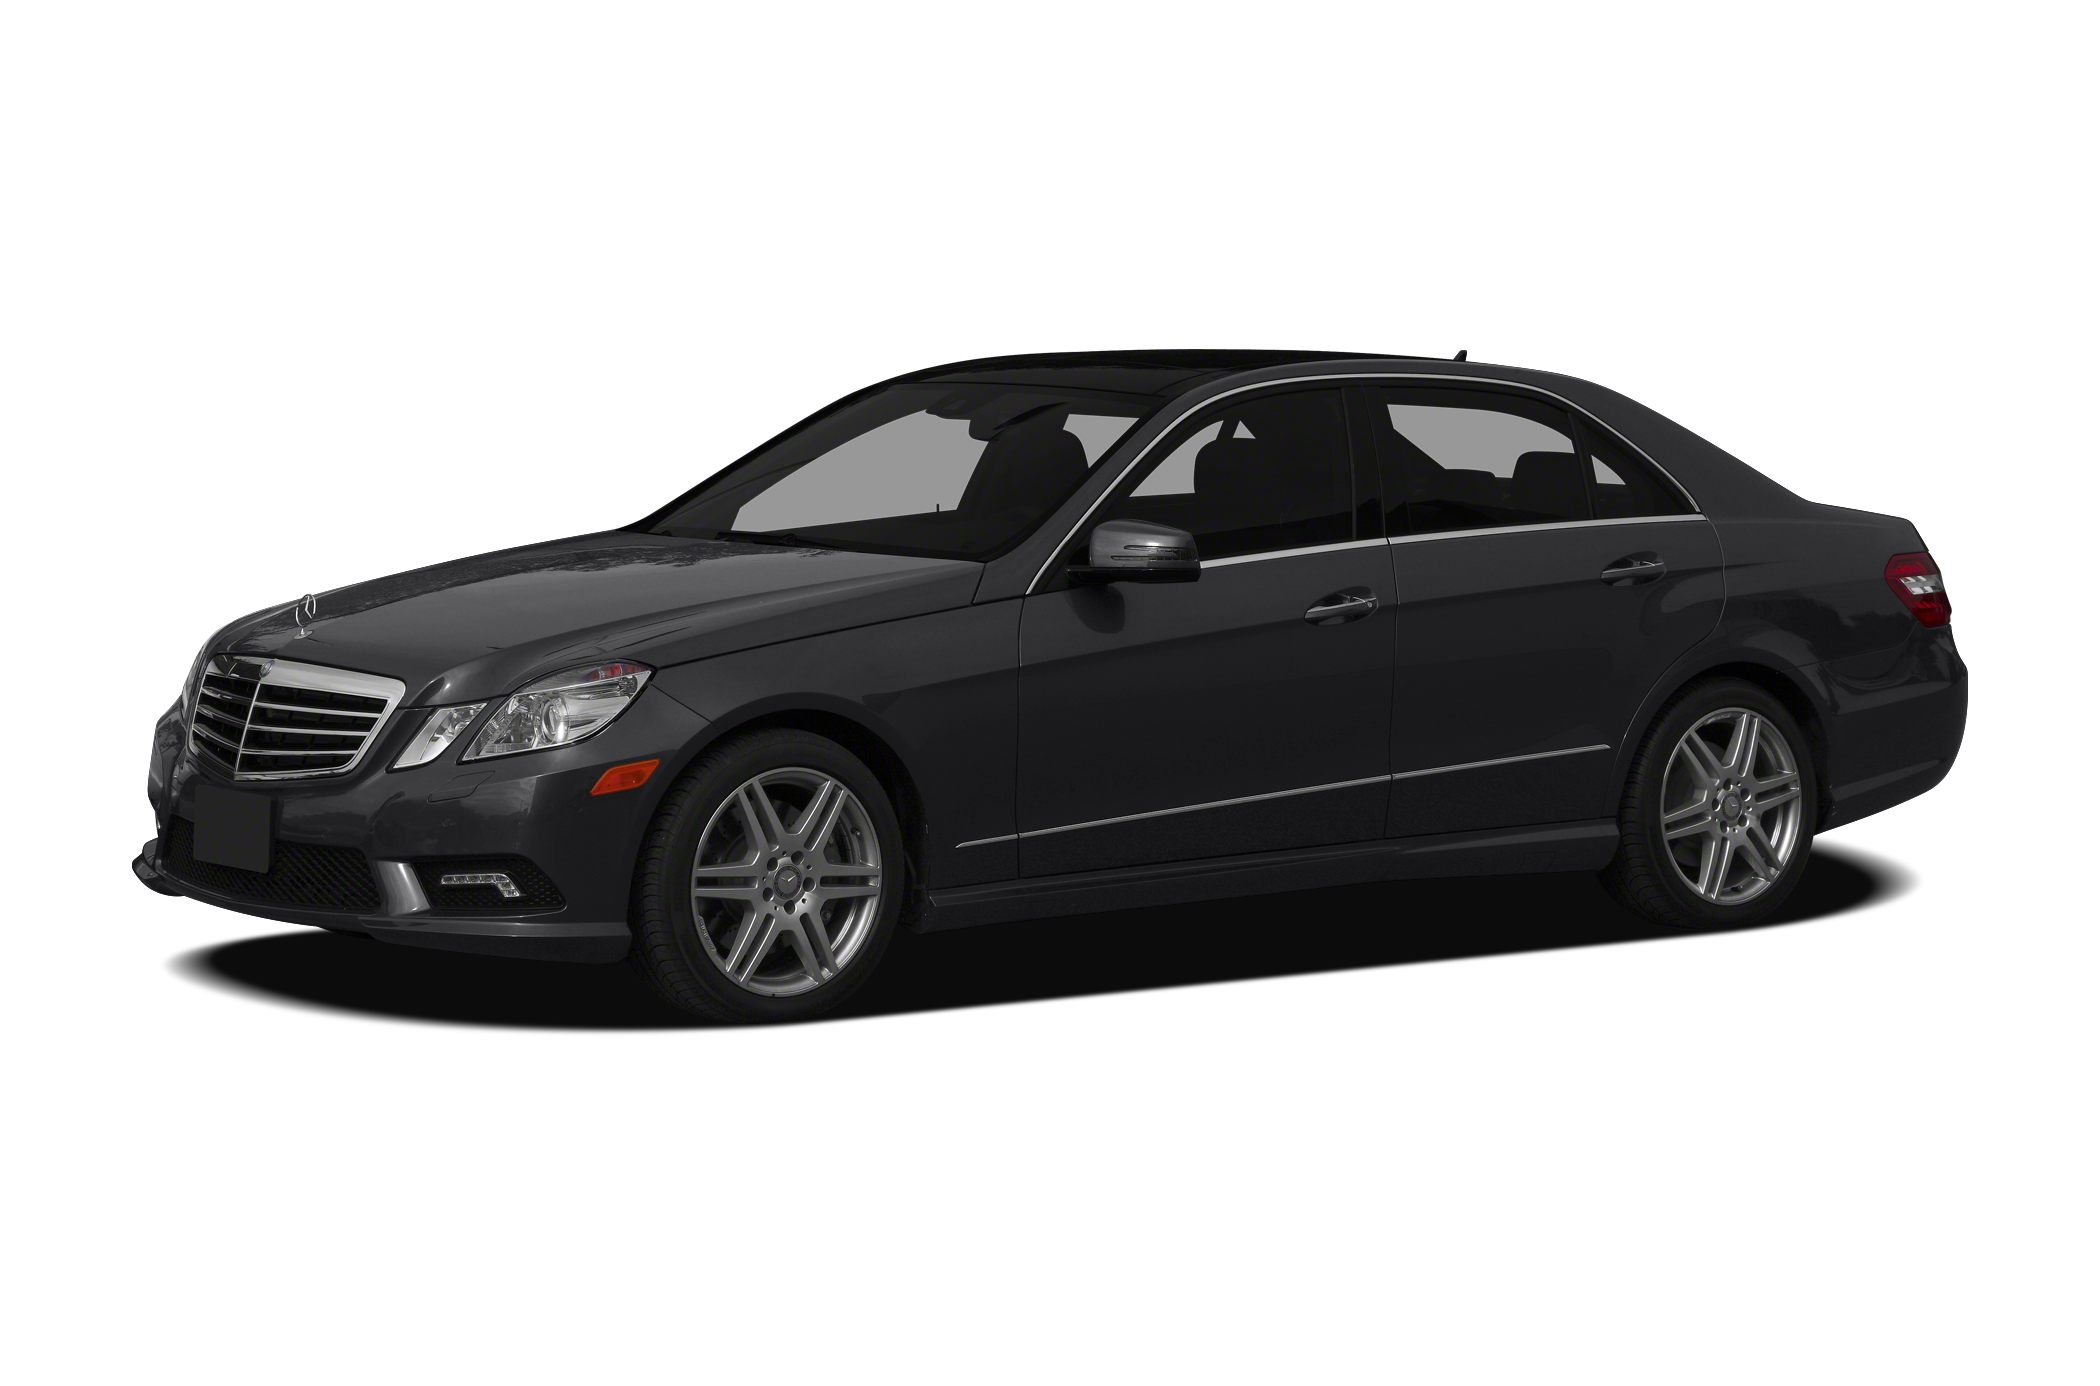 2011 MERCEDES E-Class E550 4MATIC 55L V8 DOHC 32V and 4MATIC Dont bother looking at any other ca